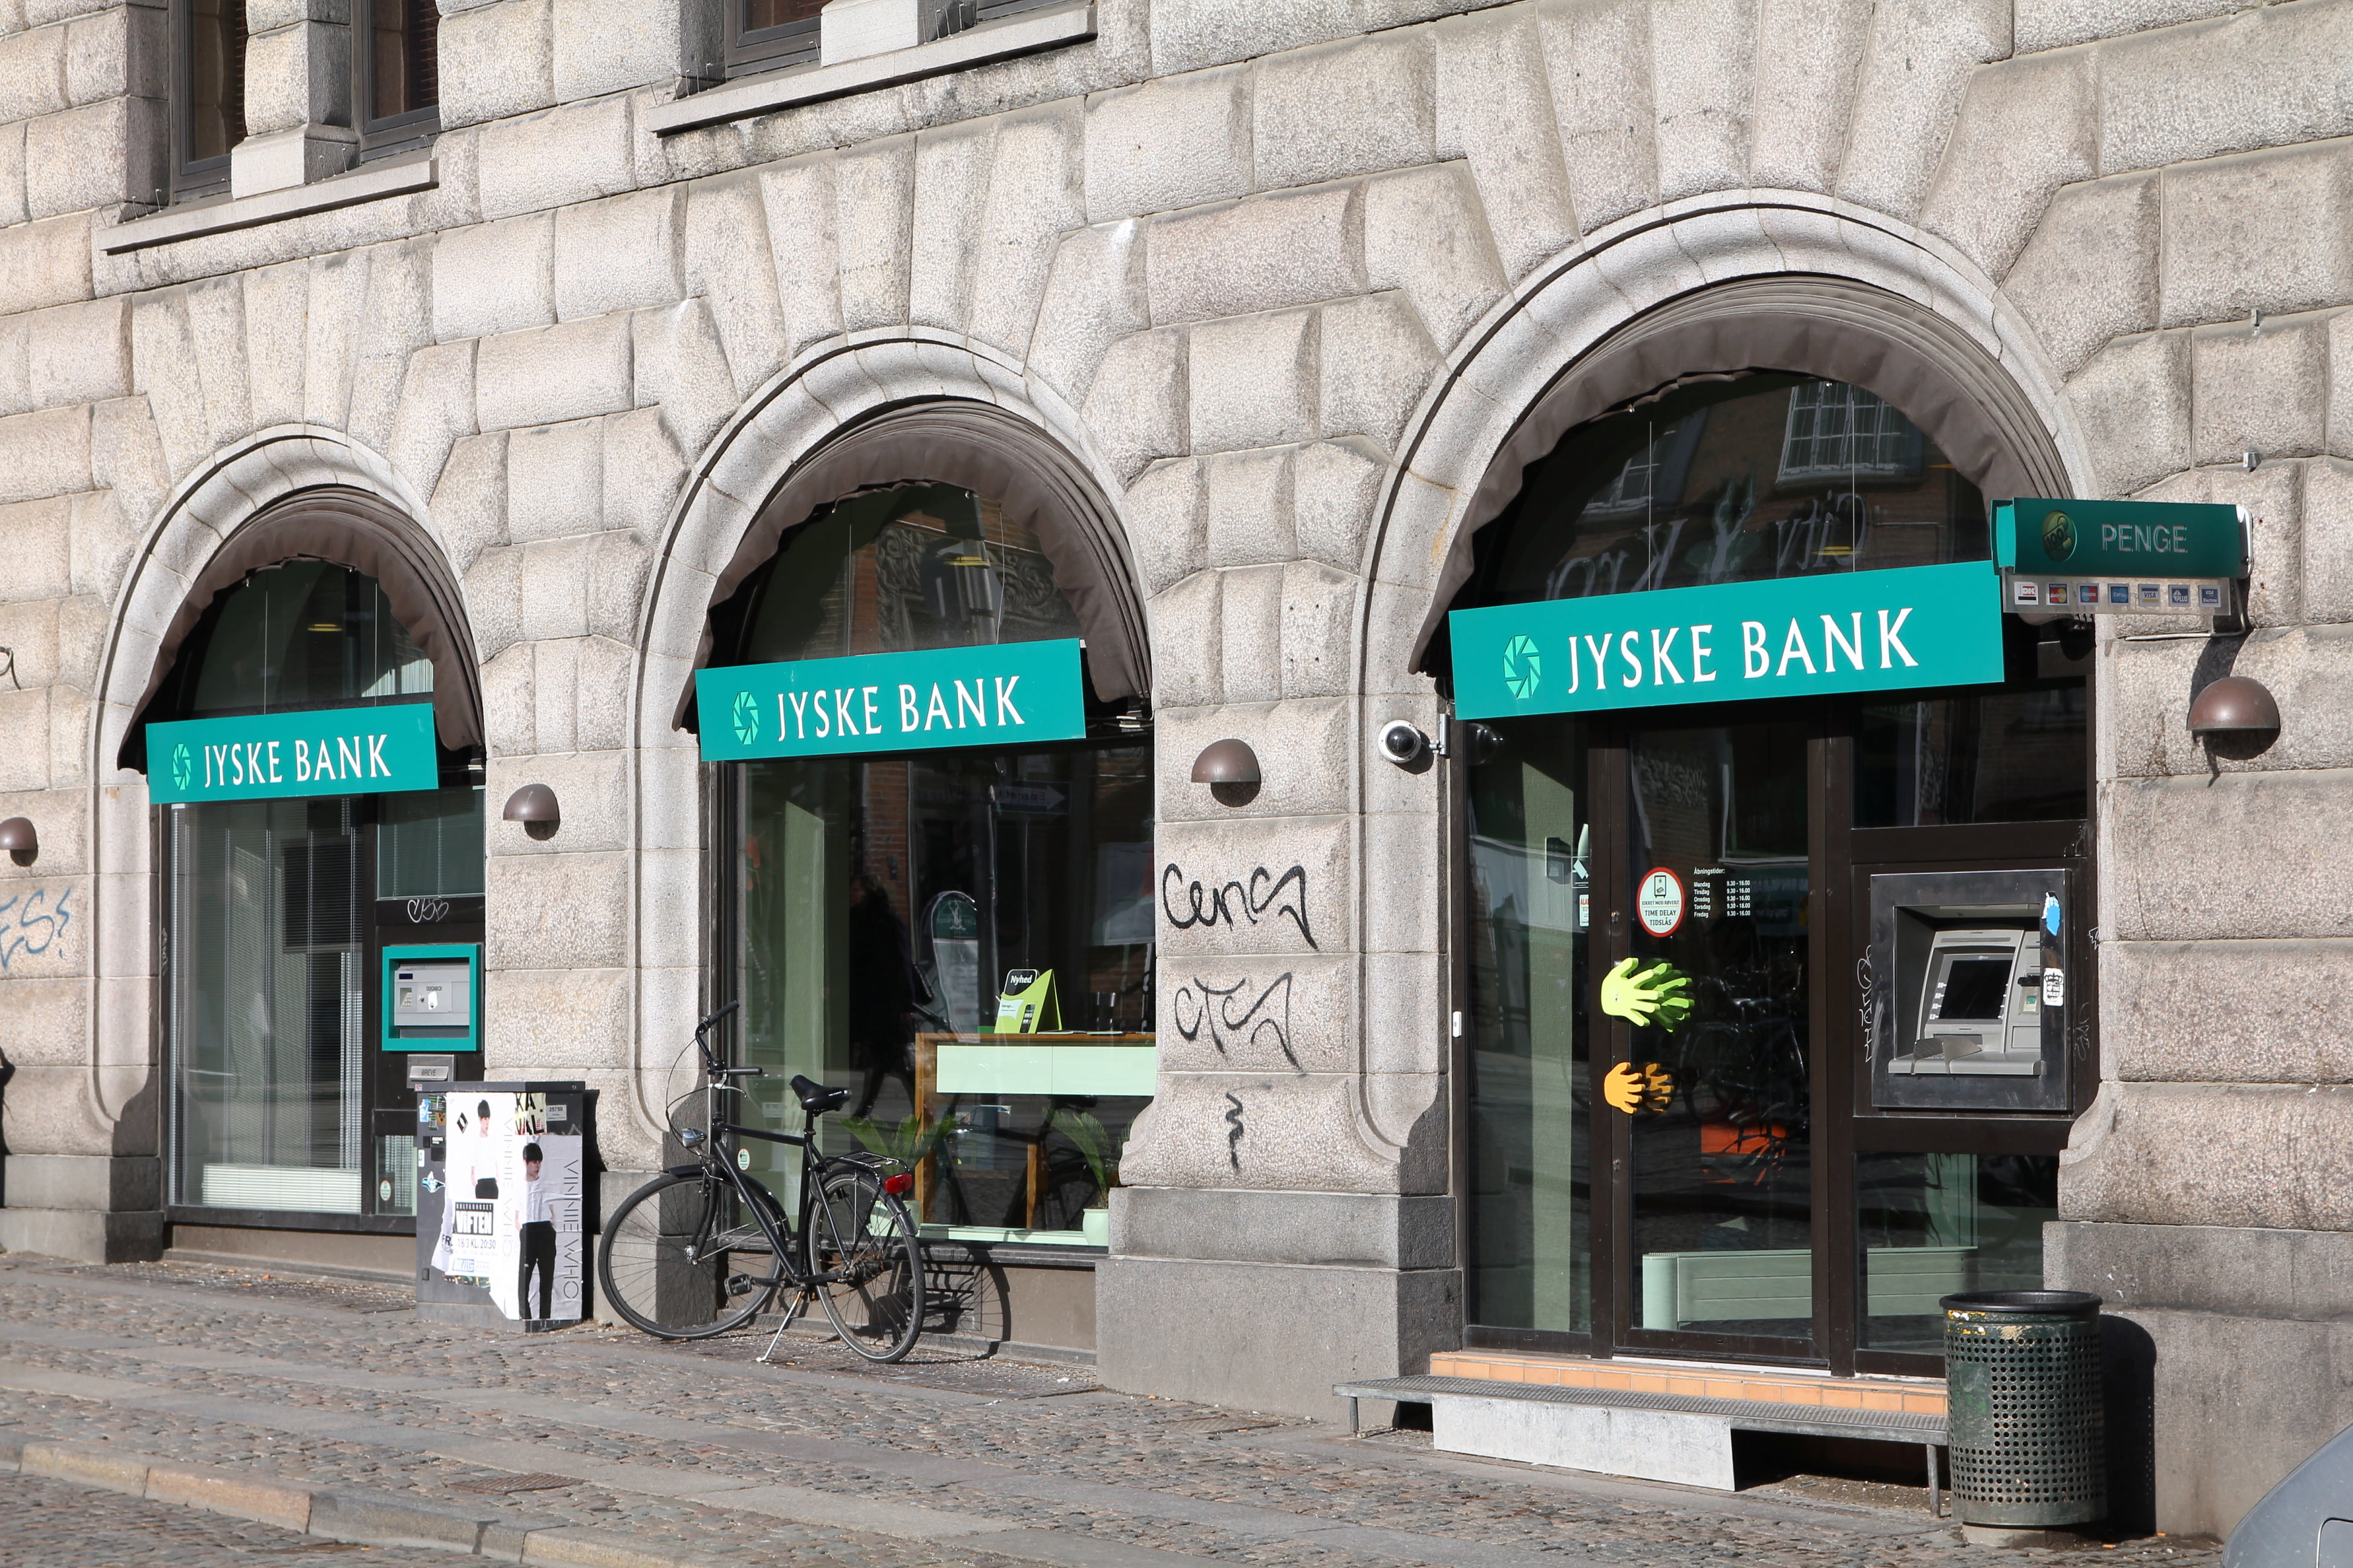 Jyske Bank stimulating the economy with cheap lending